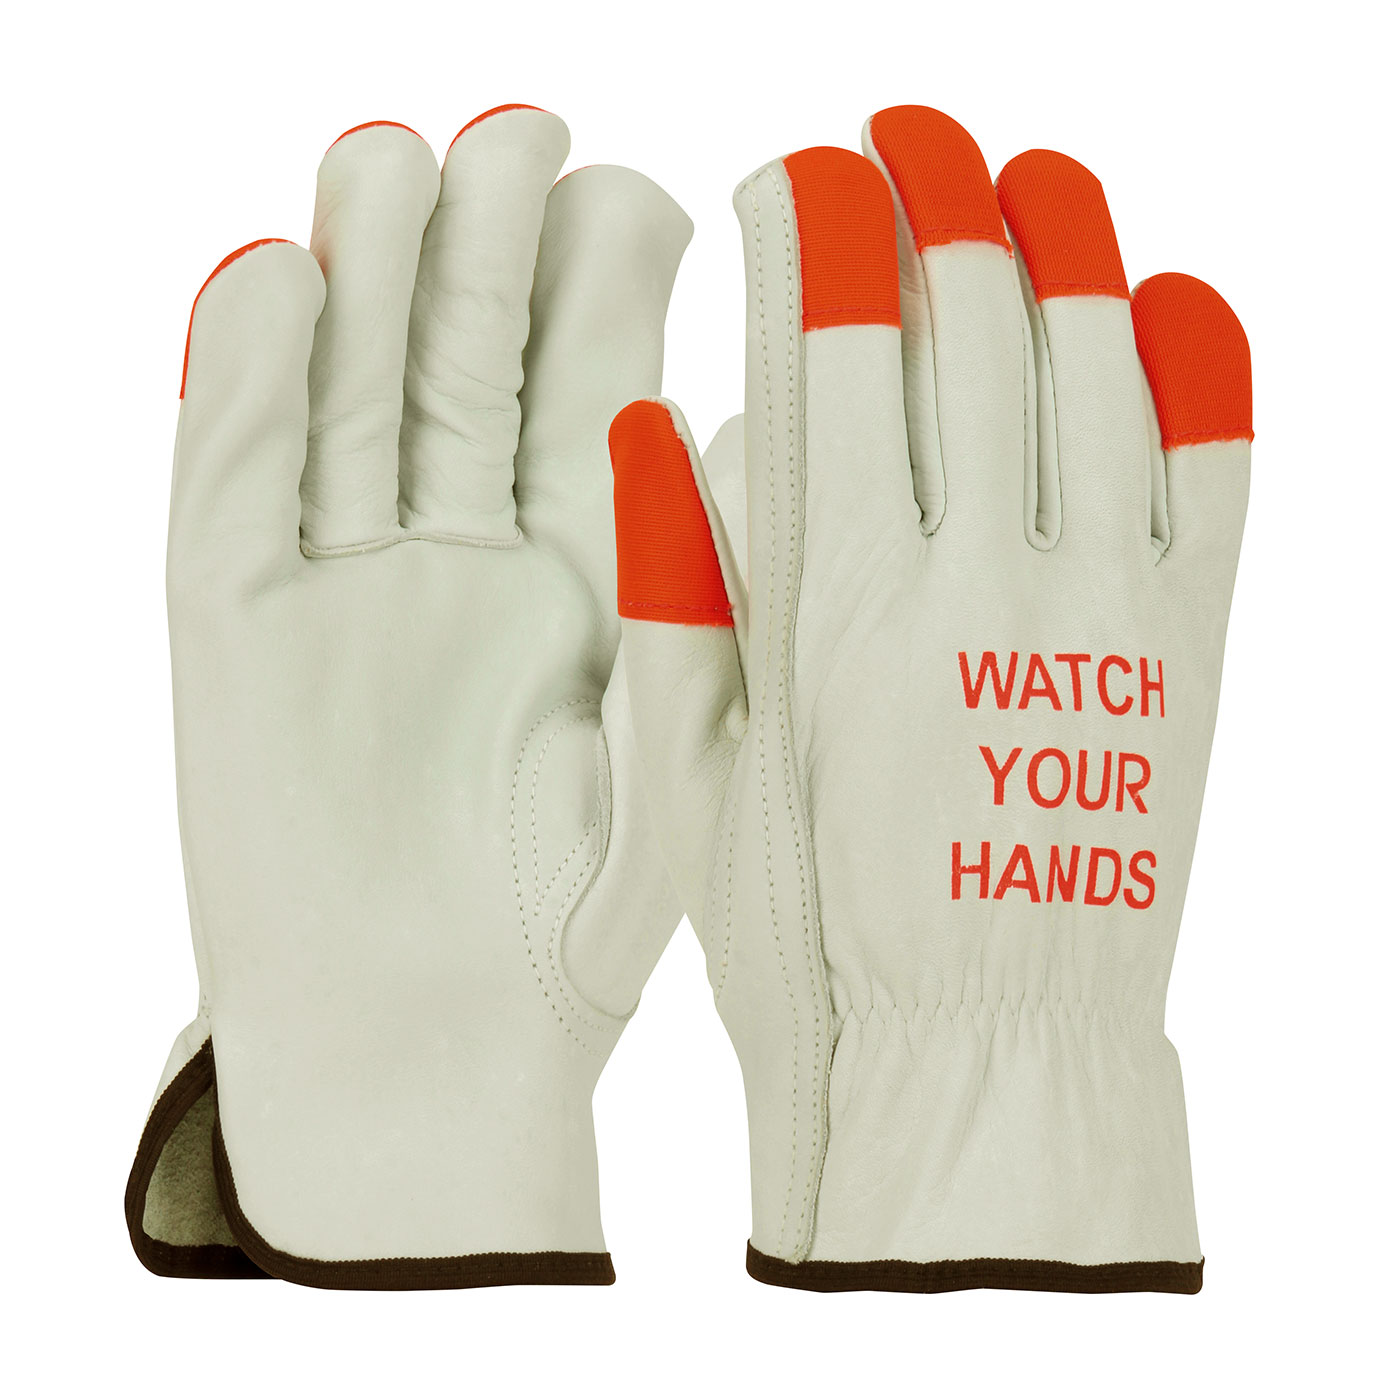 #68-162HV PIP® Cowhide Driver's Work Gloves w/ Hi-Viz Finger Tips & Imprinted Warning on Back